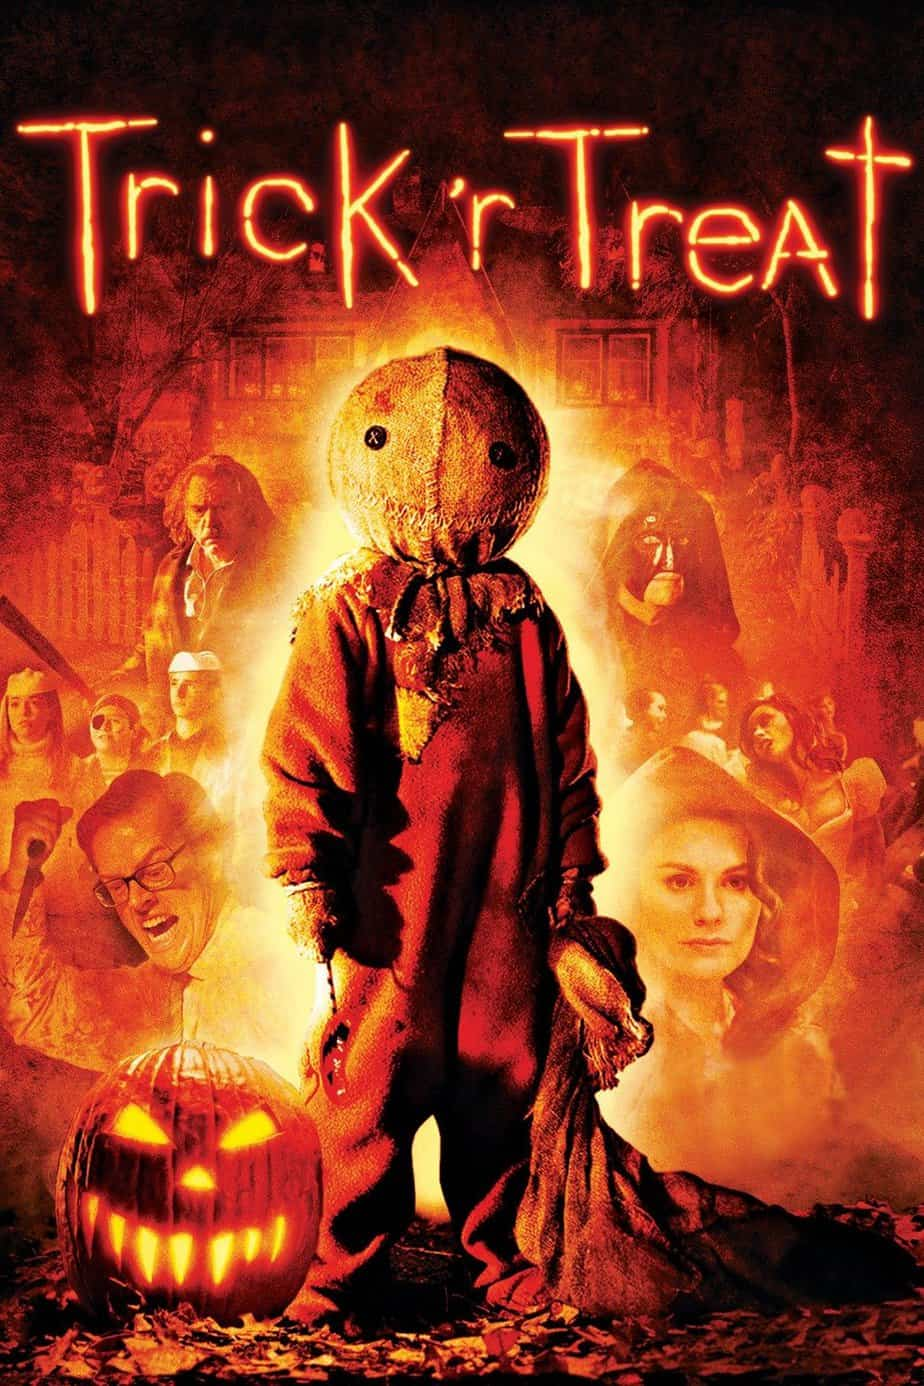 Are you looking for halloween movies to watch then you are in the right place because we have 30 best Halloween movies you will love.